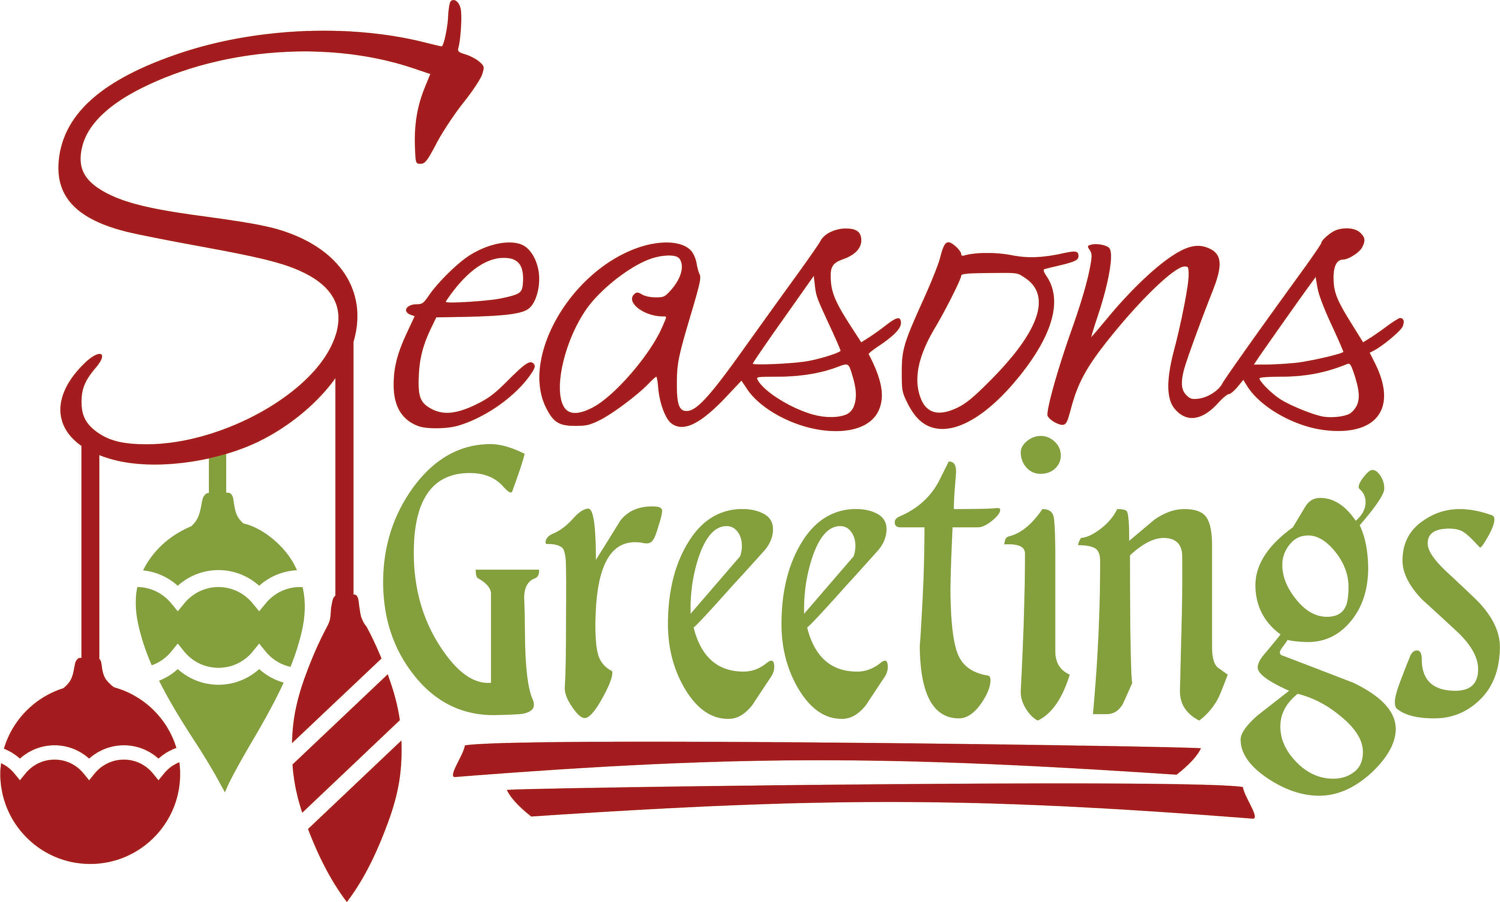 Free Seasons Greetings Images, Download Free Clip Art, Free.